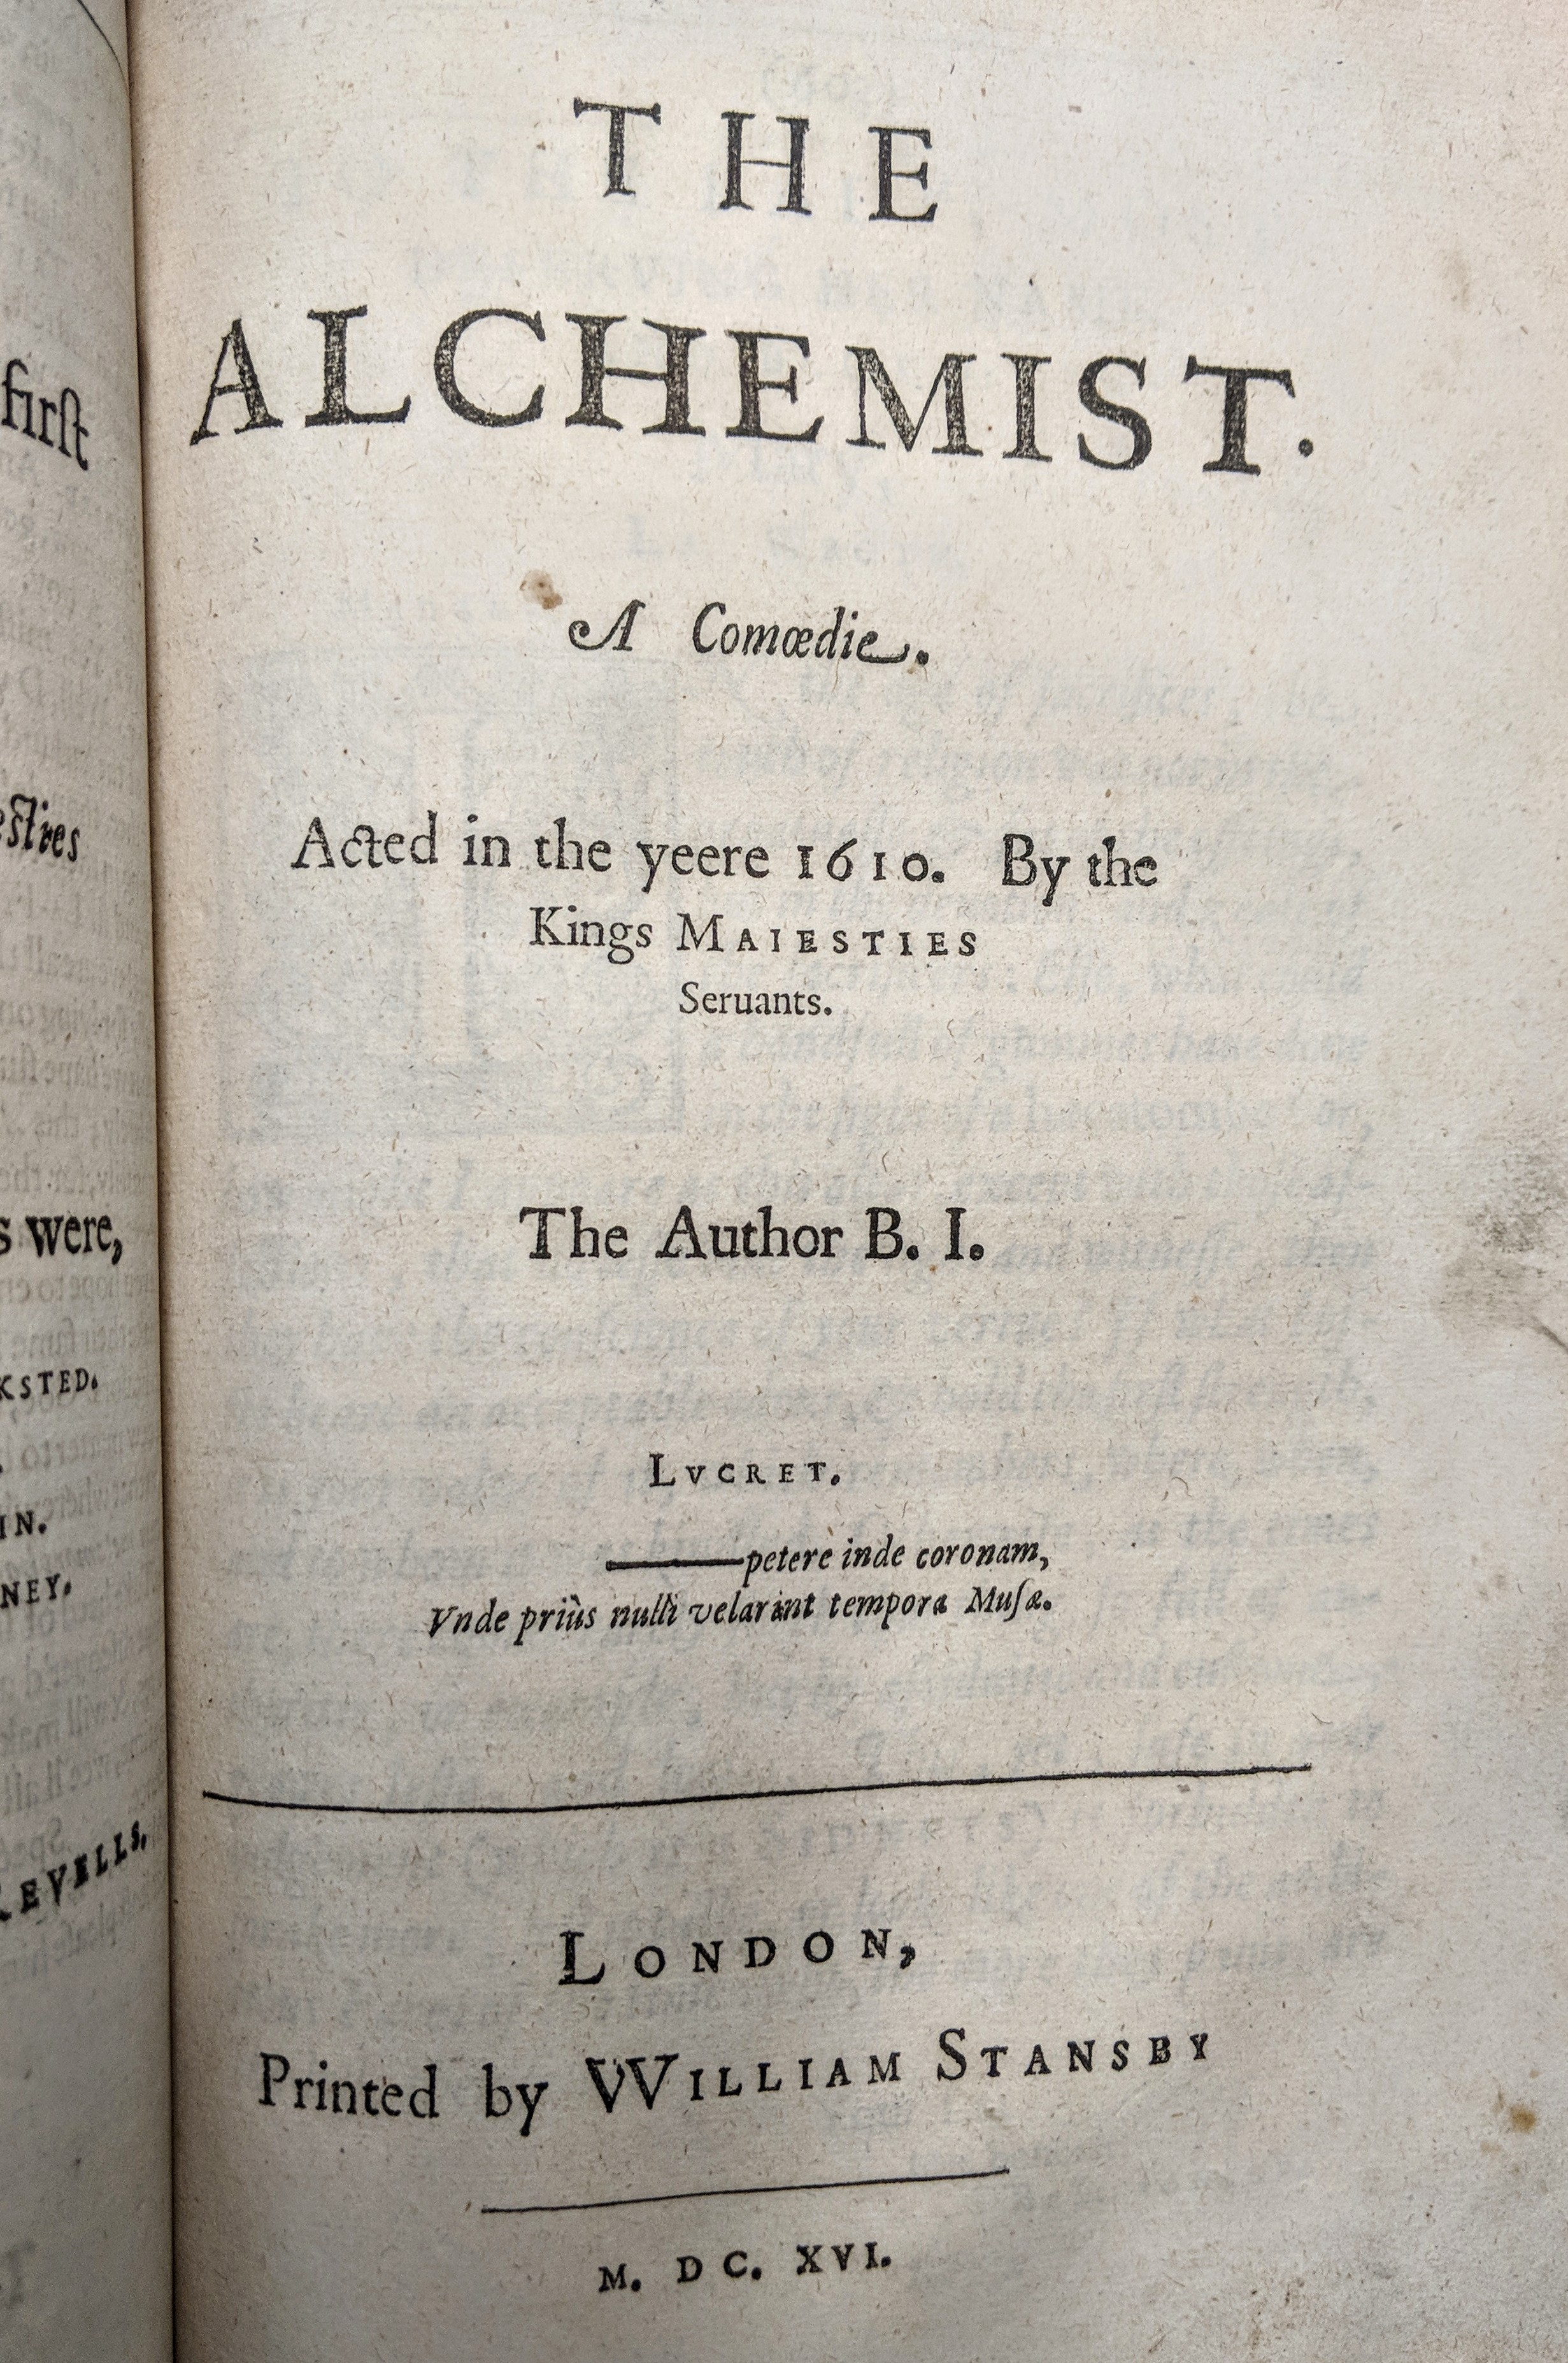 Title page from 'The Alchemist' by Ben Jonson in Jonson's First Folio of 1616.